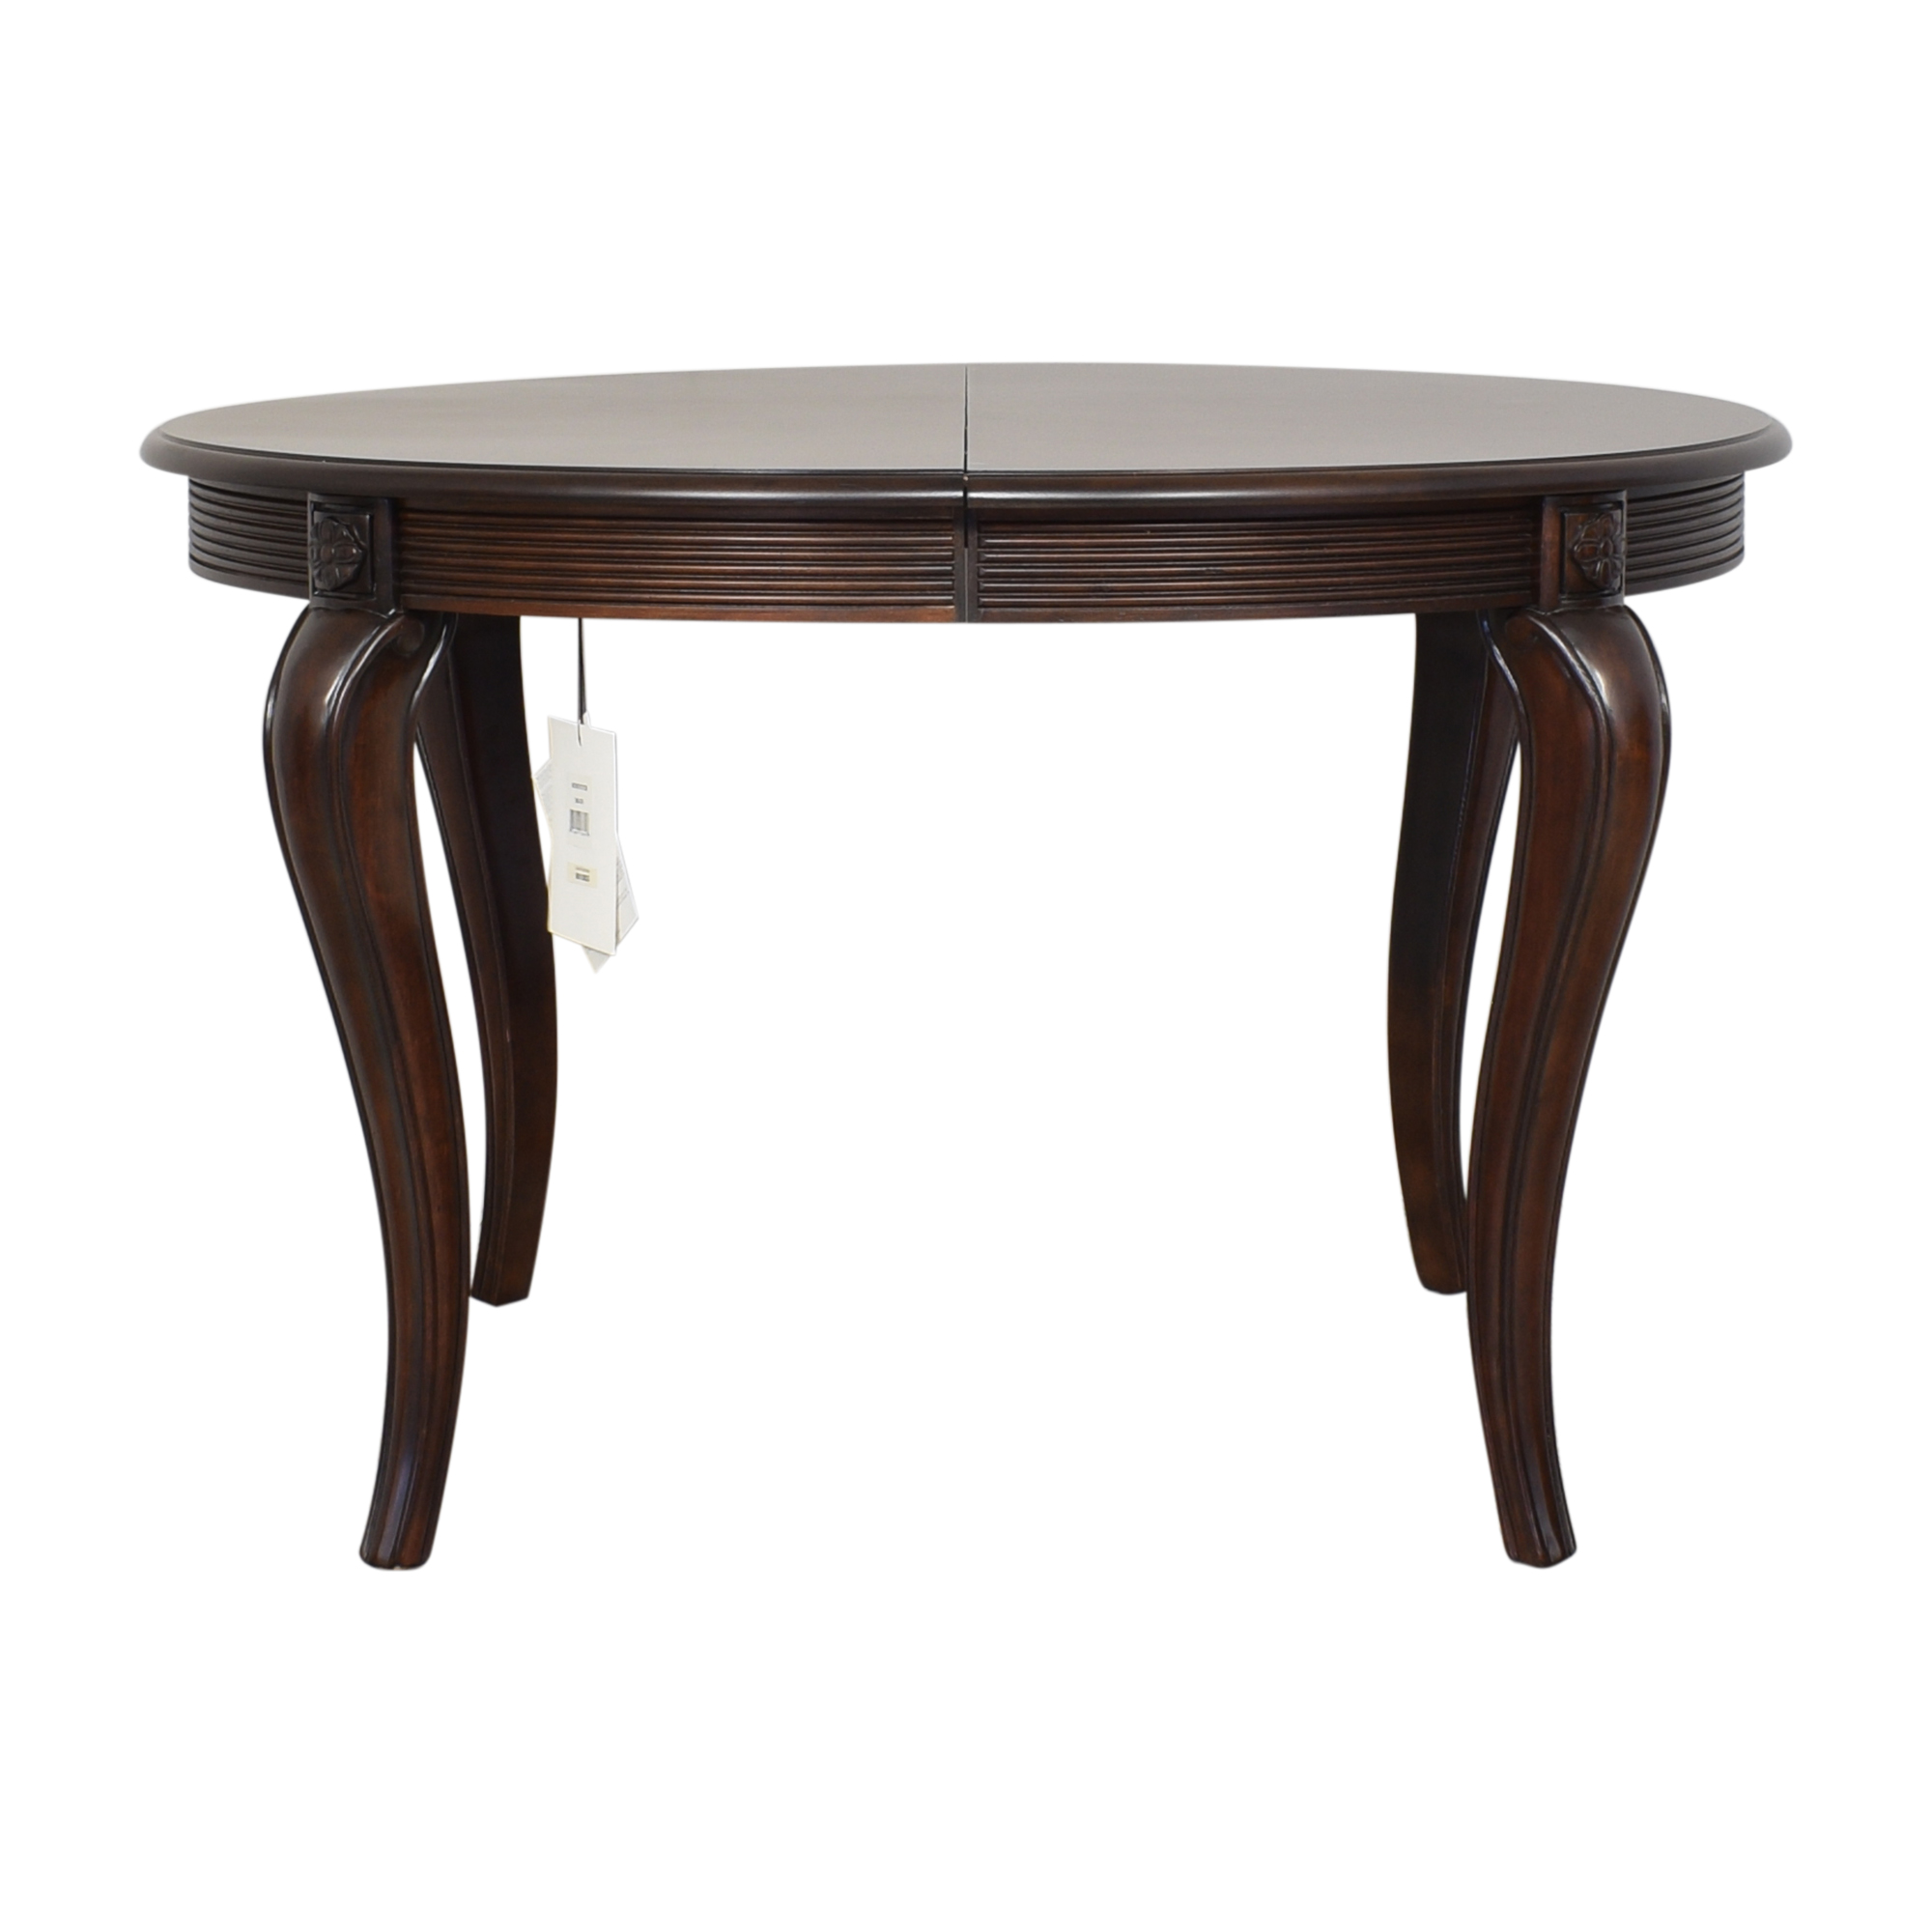 Bernhardt Bernhardt Round Extendable Dining Table second hand